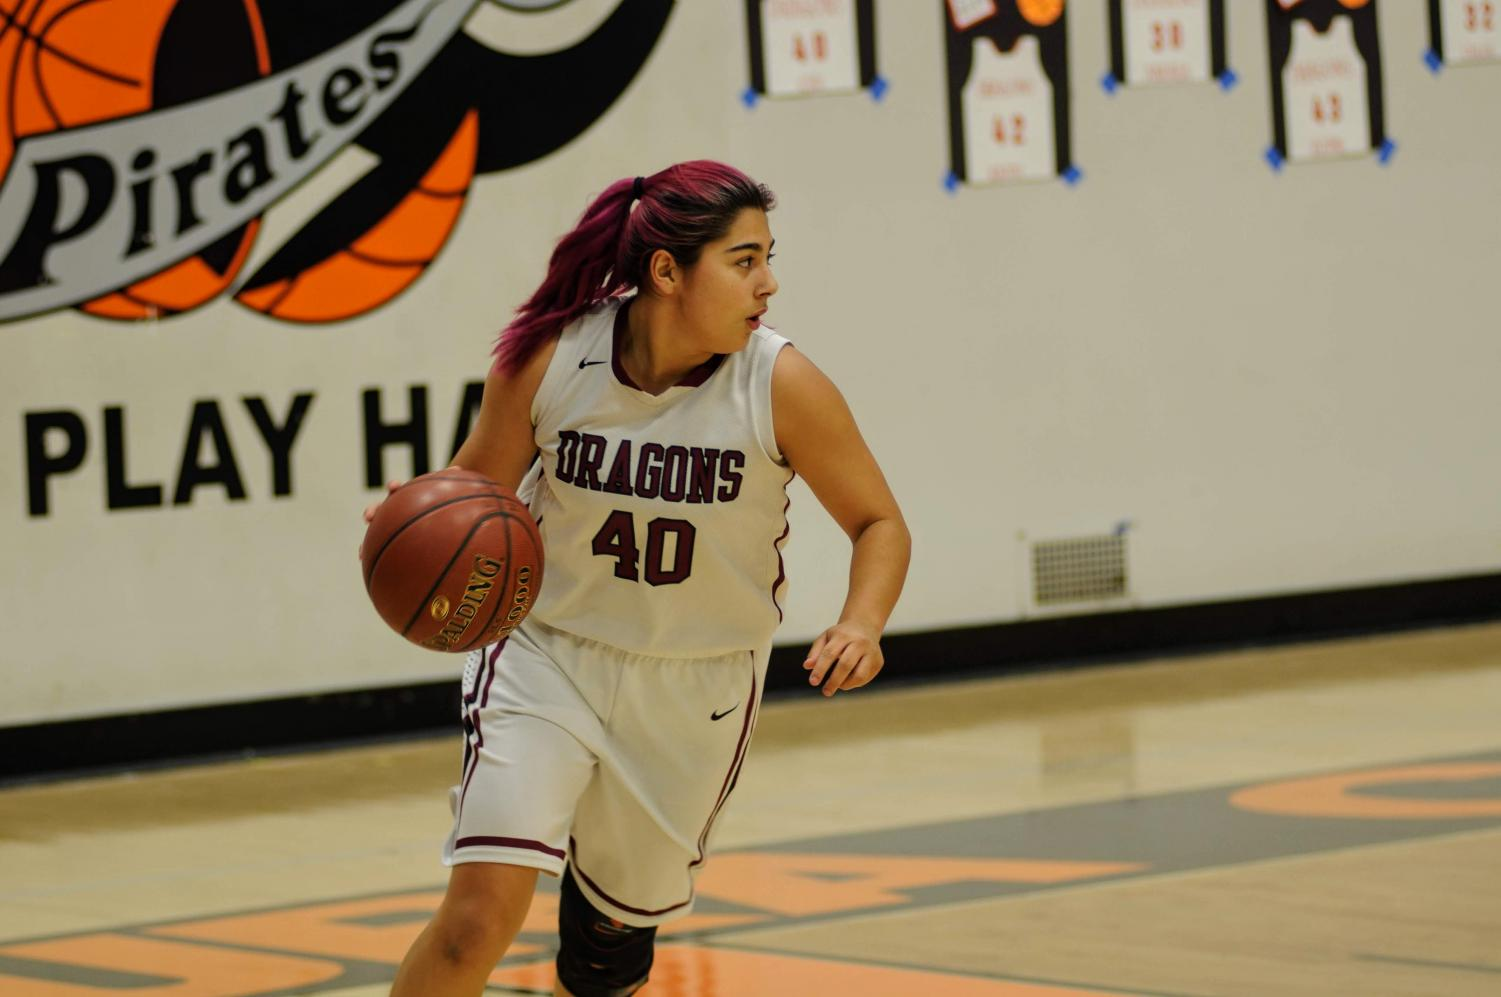 Cydnie Gutierrez '19 dribbles the ball.